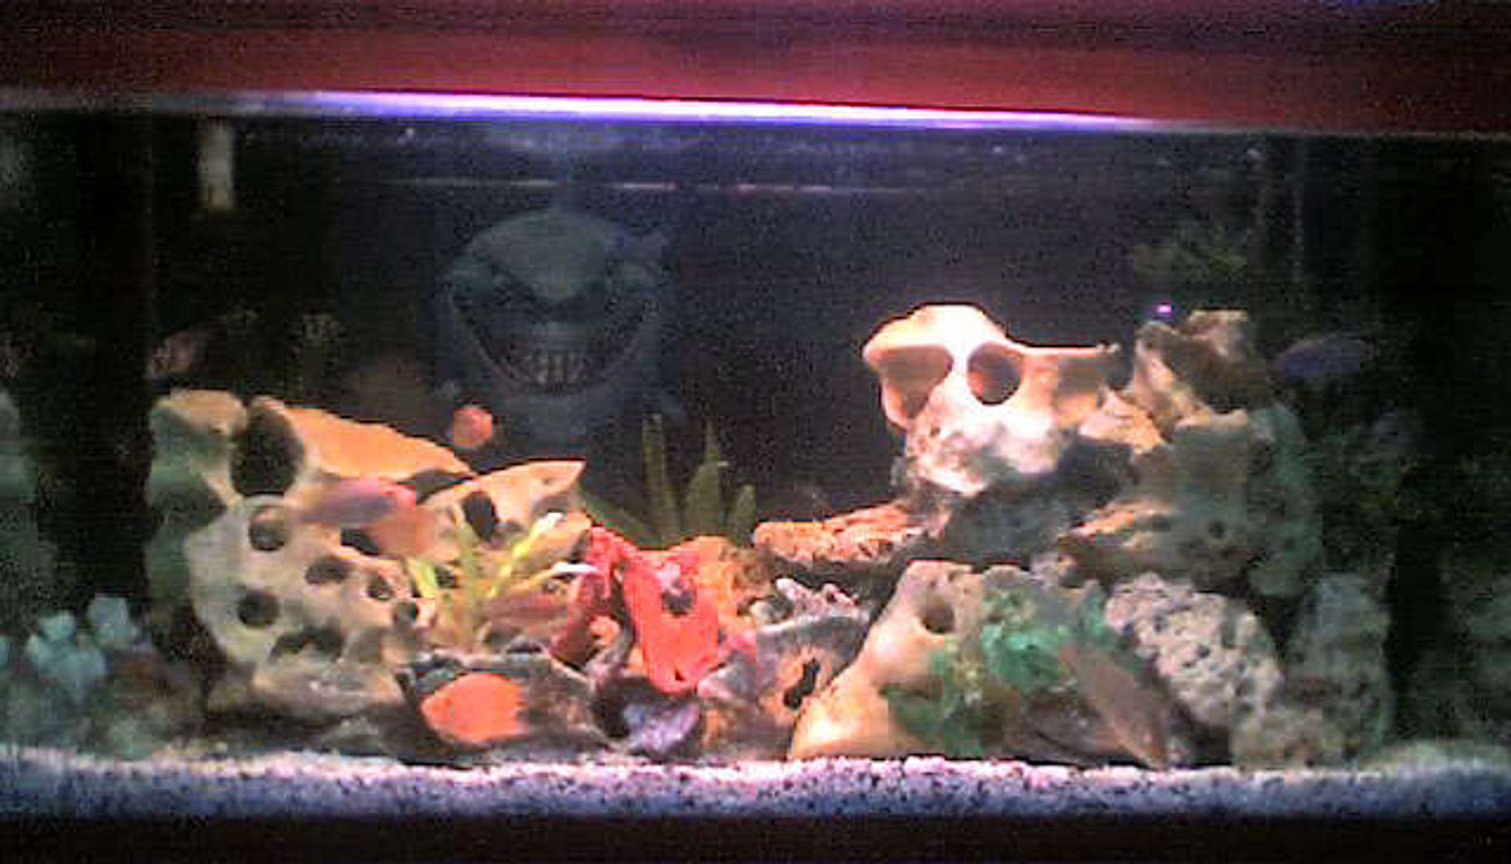 50 gallons freshwater fish tank (mostly fish and non-living decorations) - pix #2 50 gal. overhead filter, air bubbles, fake plants, skull stones, garden rocks, 5 colors sand. Fishes are escondido, 1 white cichlid, blue jewel, 5 colors peacock, surinamensis, tangerine, yellow prince, malari, green ceverum, 3 parrots, jacob, red peacock, blue dolphin, venustus, lanisticola and a pleco.